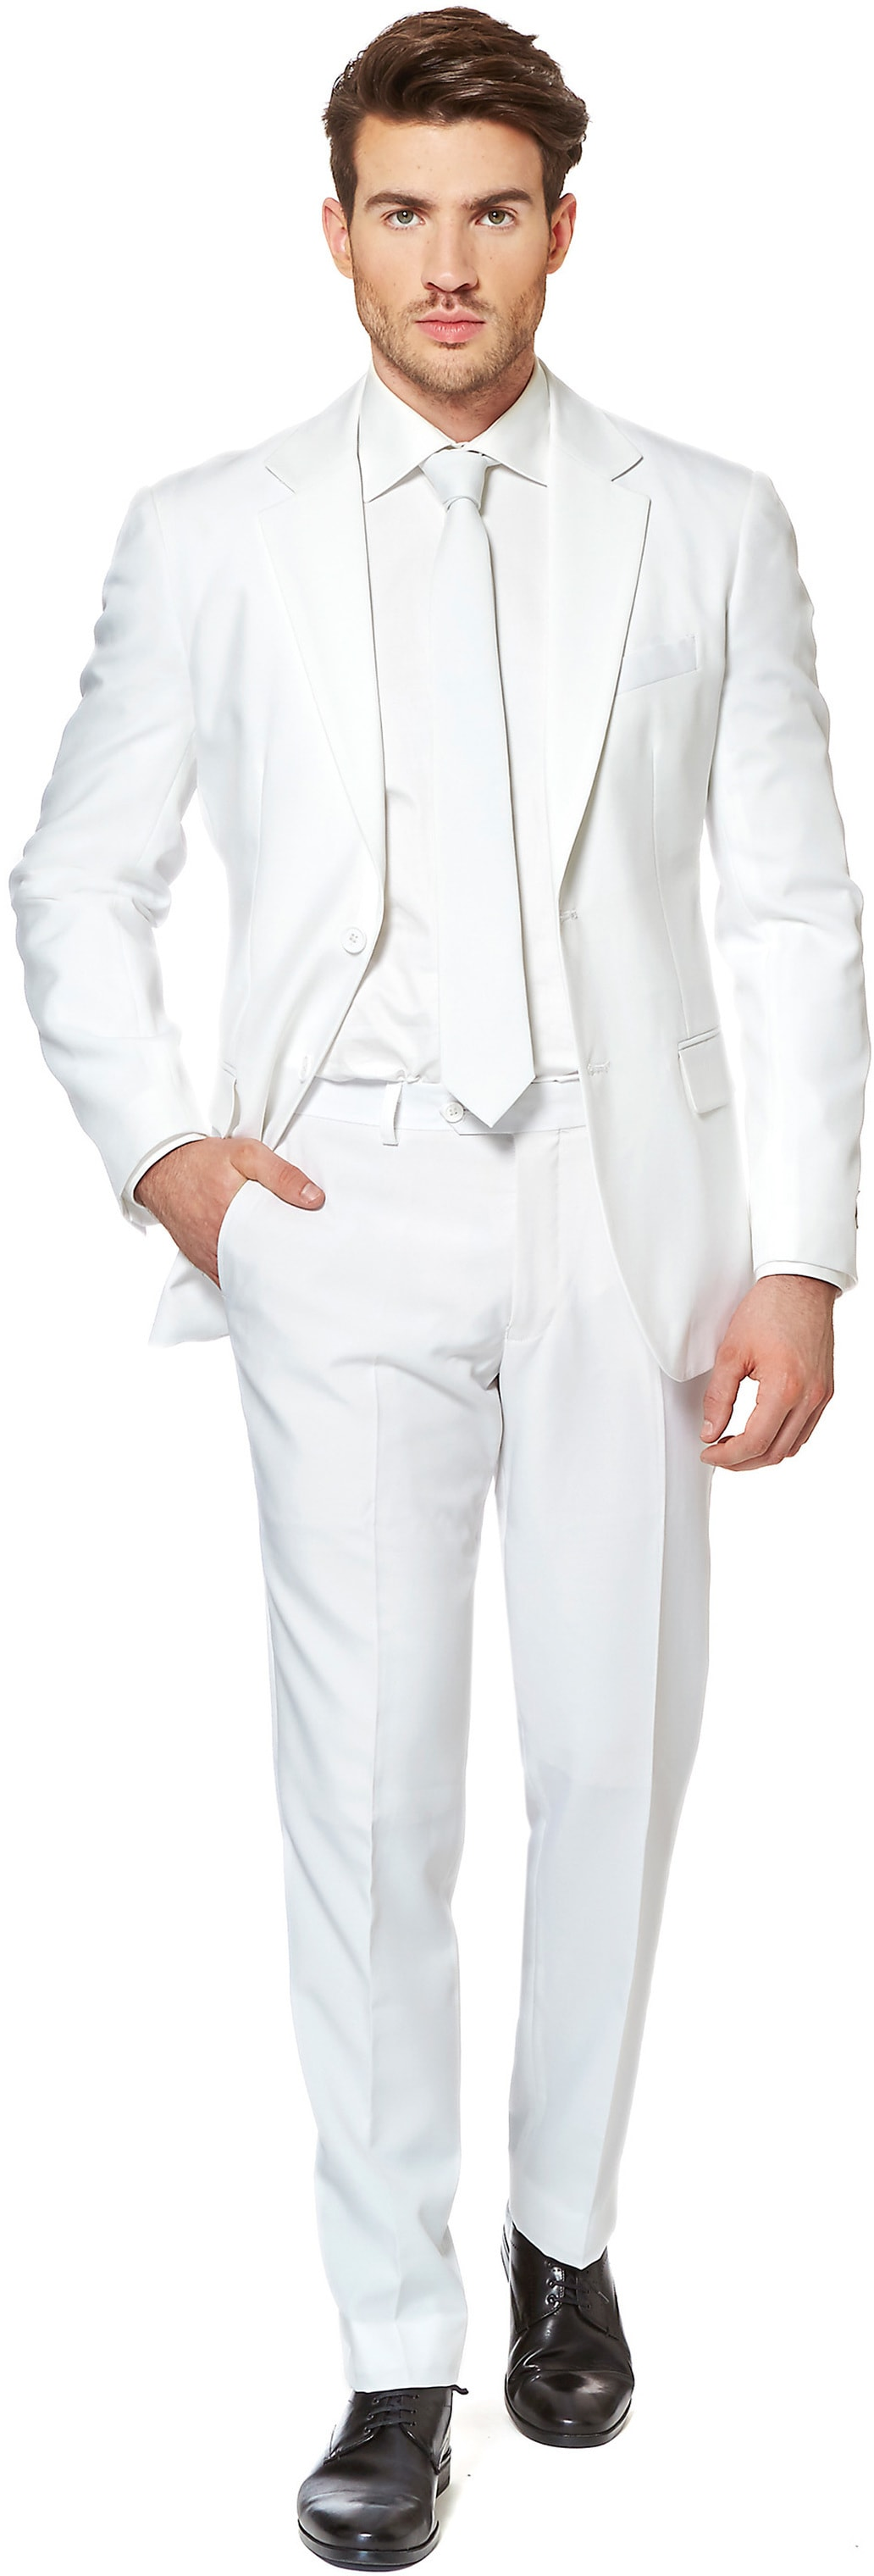 OppoSuits White Knight Suit foto 0